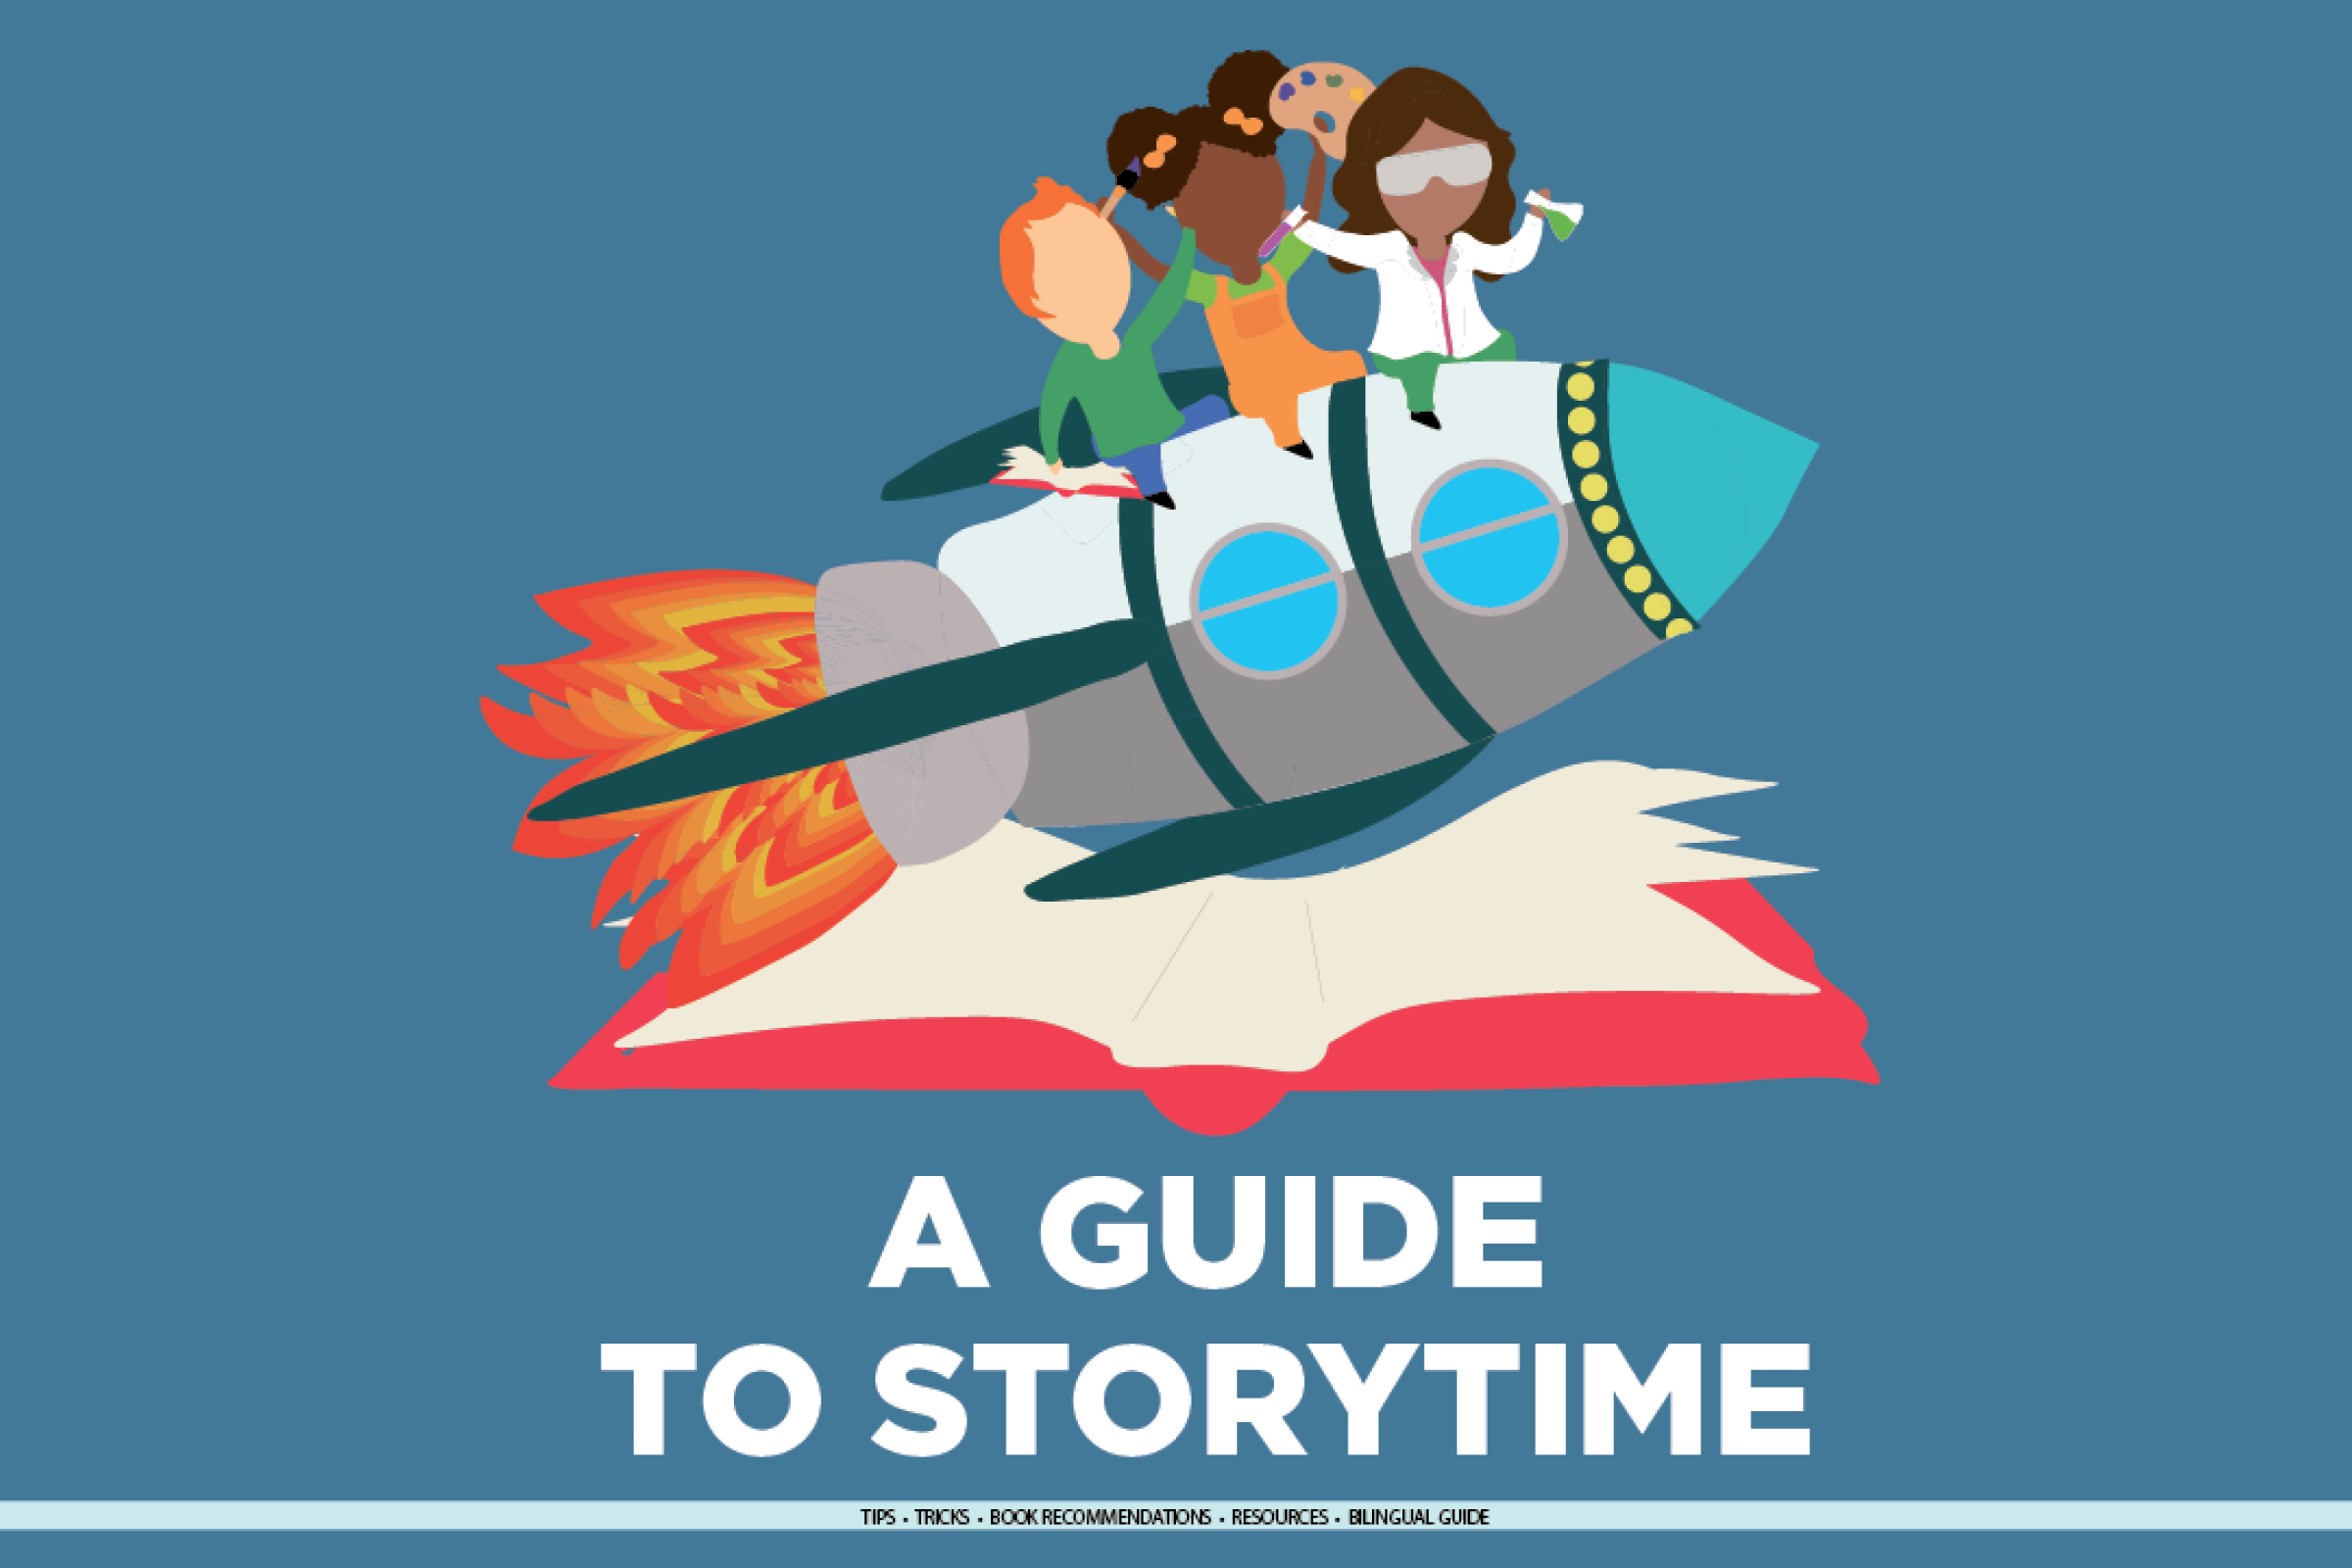 A guide to storytime